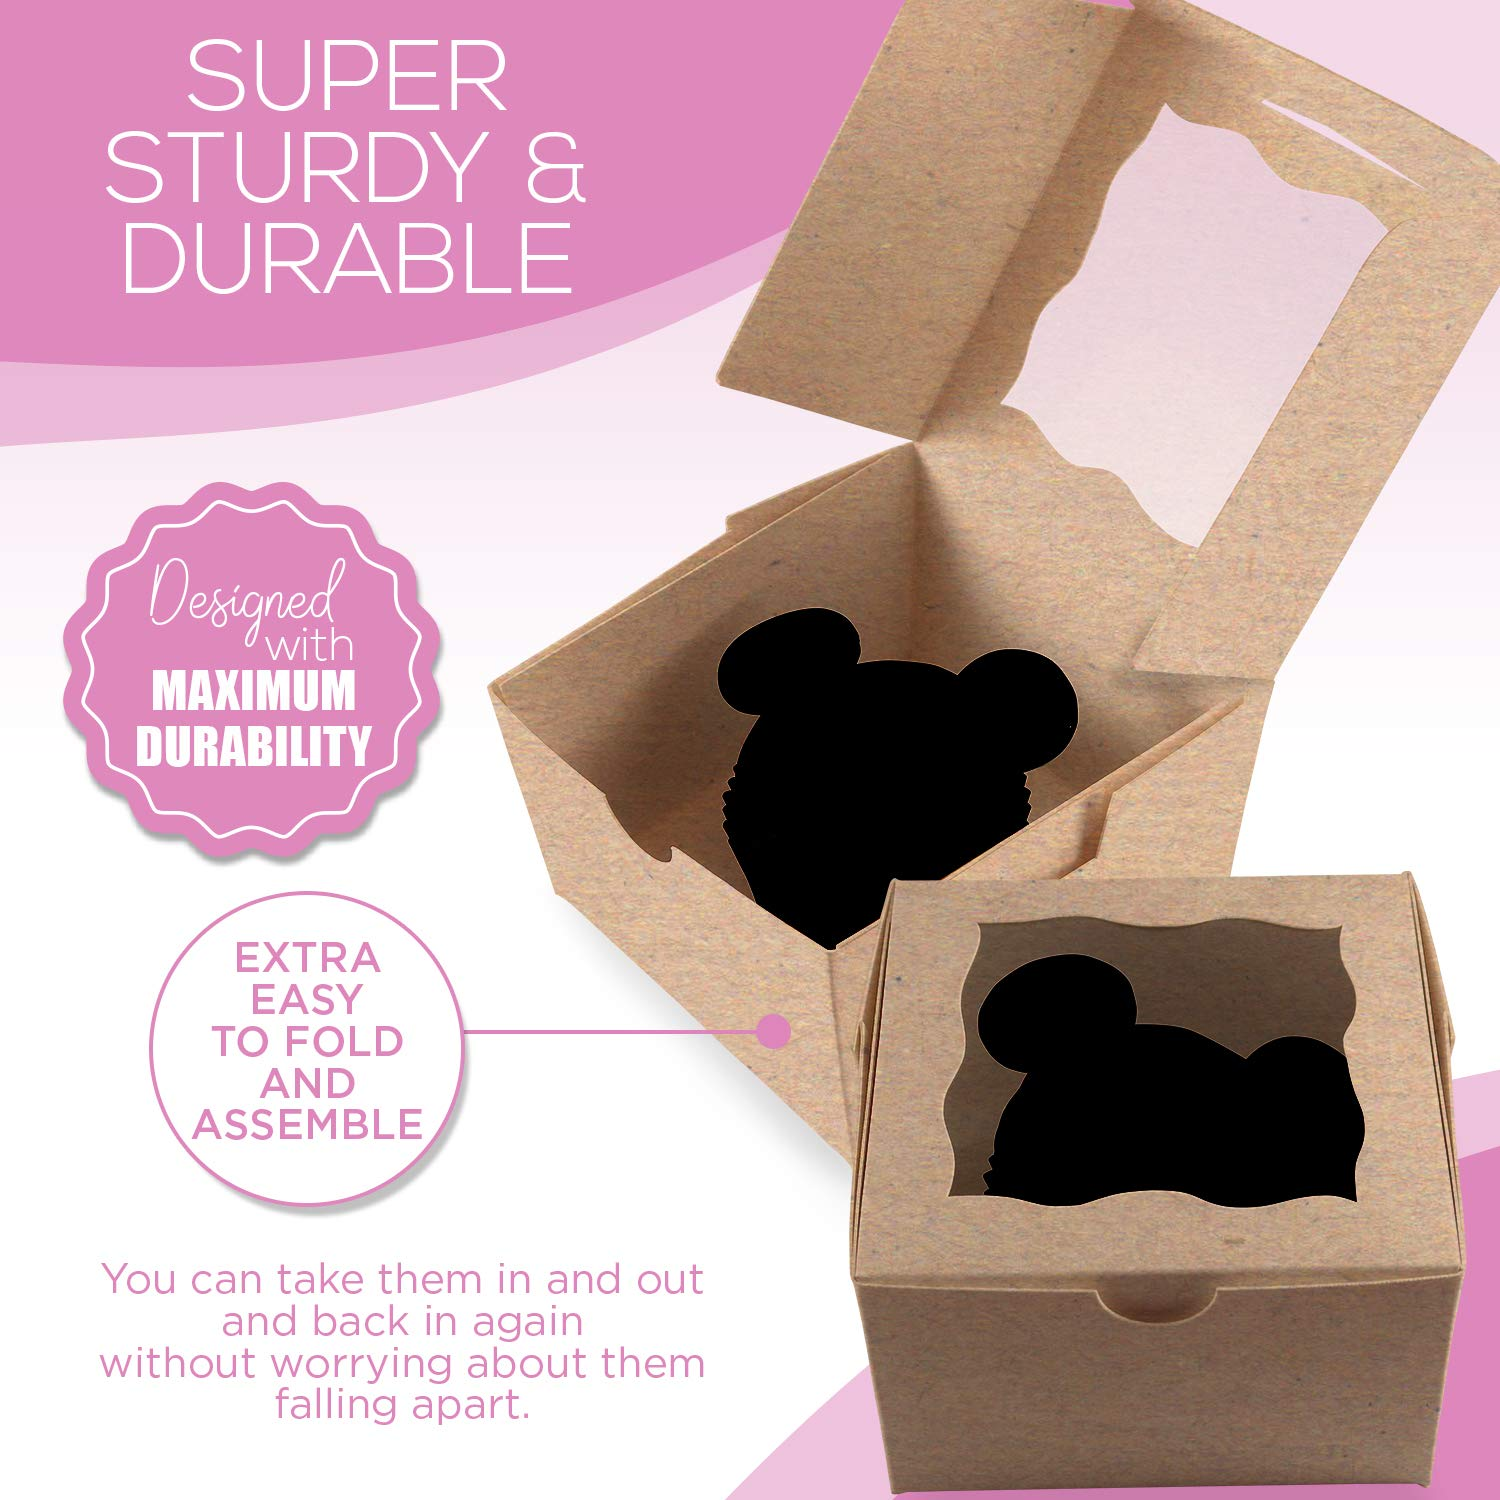 [50Pack] Bakery and Wedding Favor Boxes with Window 4x4x2.5'' - Gift Boxes for Cookies, Cake, Pastries, Donuts, Cupcakes, Candy & Baked Good Treats | Small Dessert Packaging Party Containers by FreshLi (Image #5)